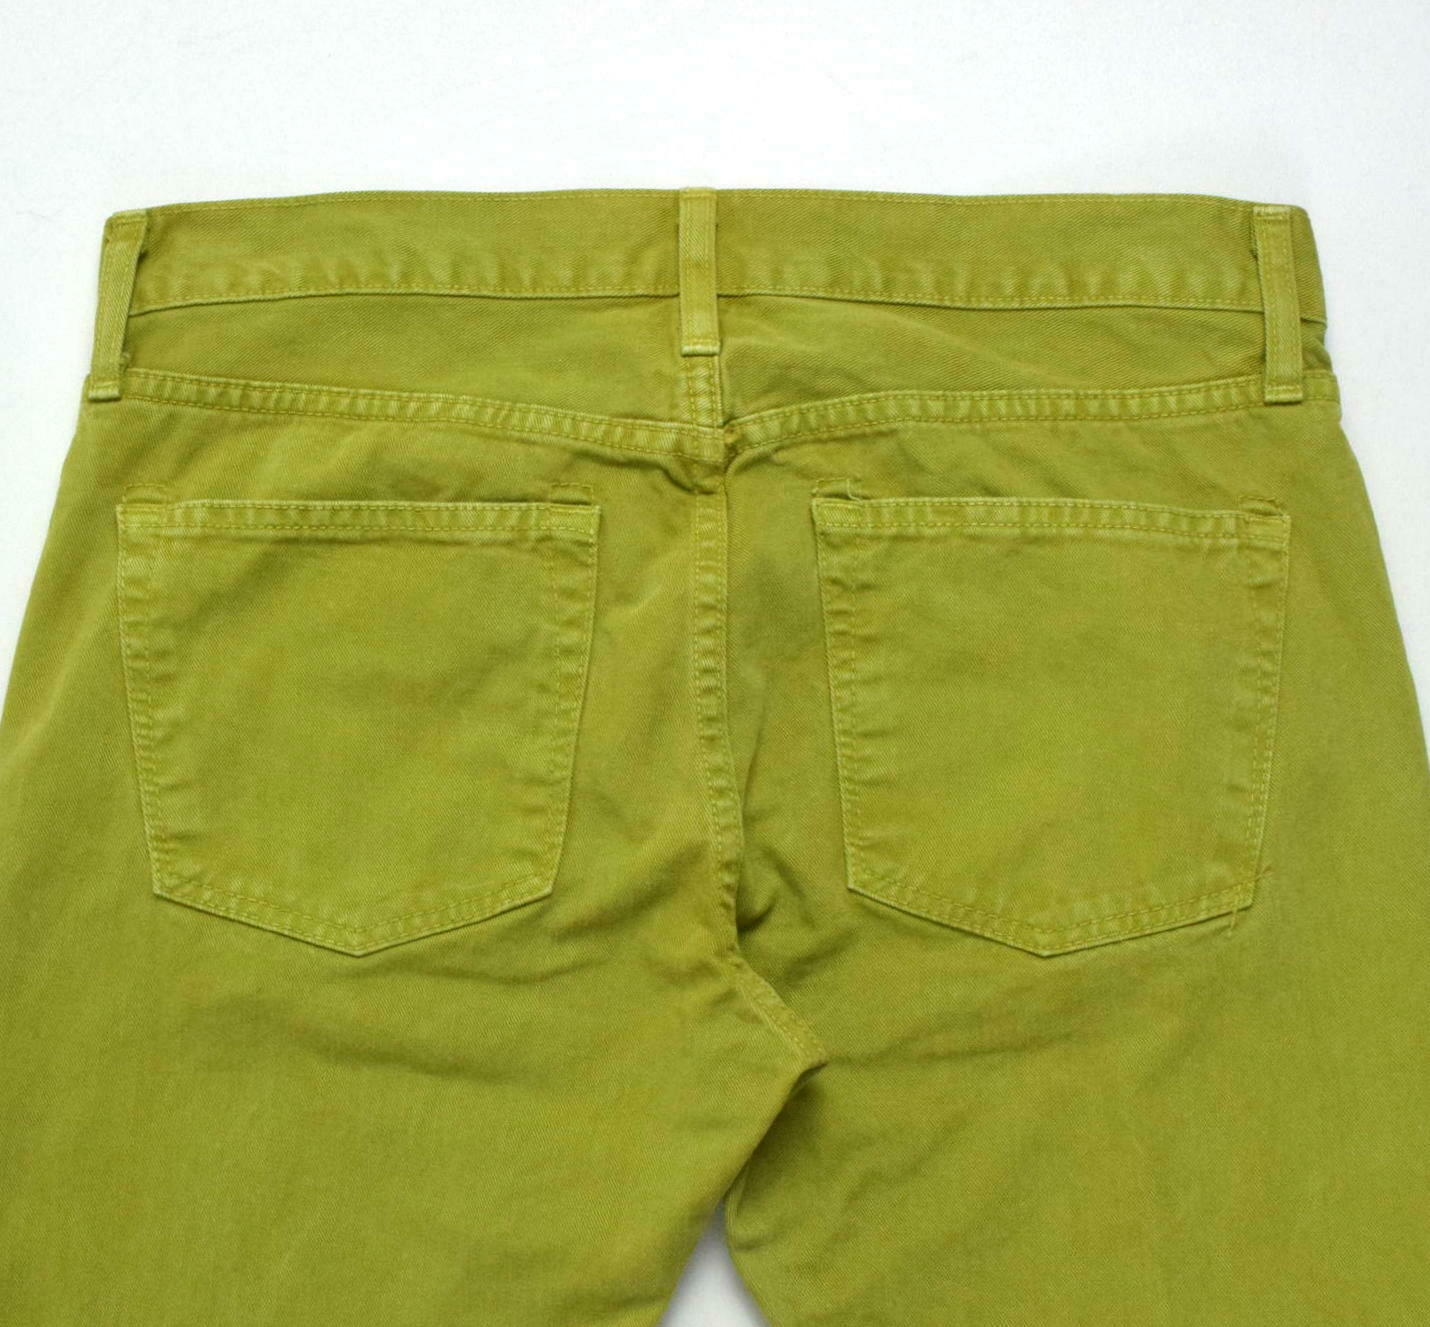 J Brand Green Denim Button Fly Jeans Pants Boot Cut Womens Size 32 x 32.5 image 4